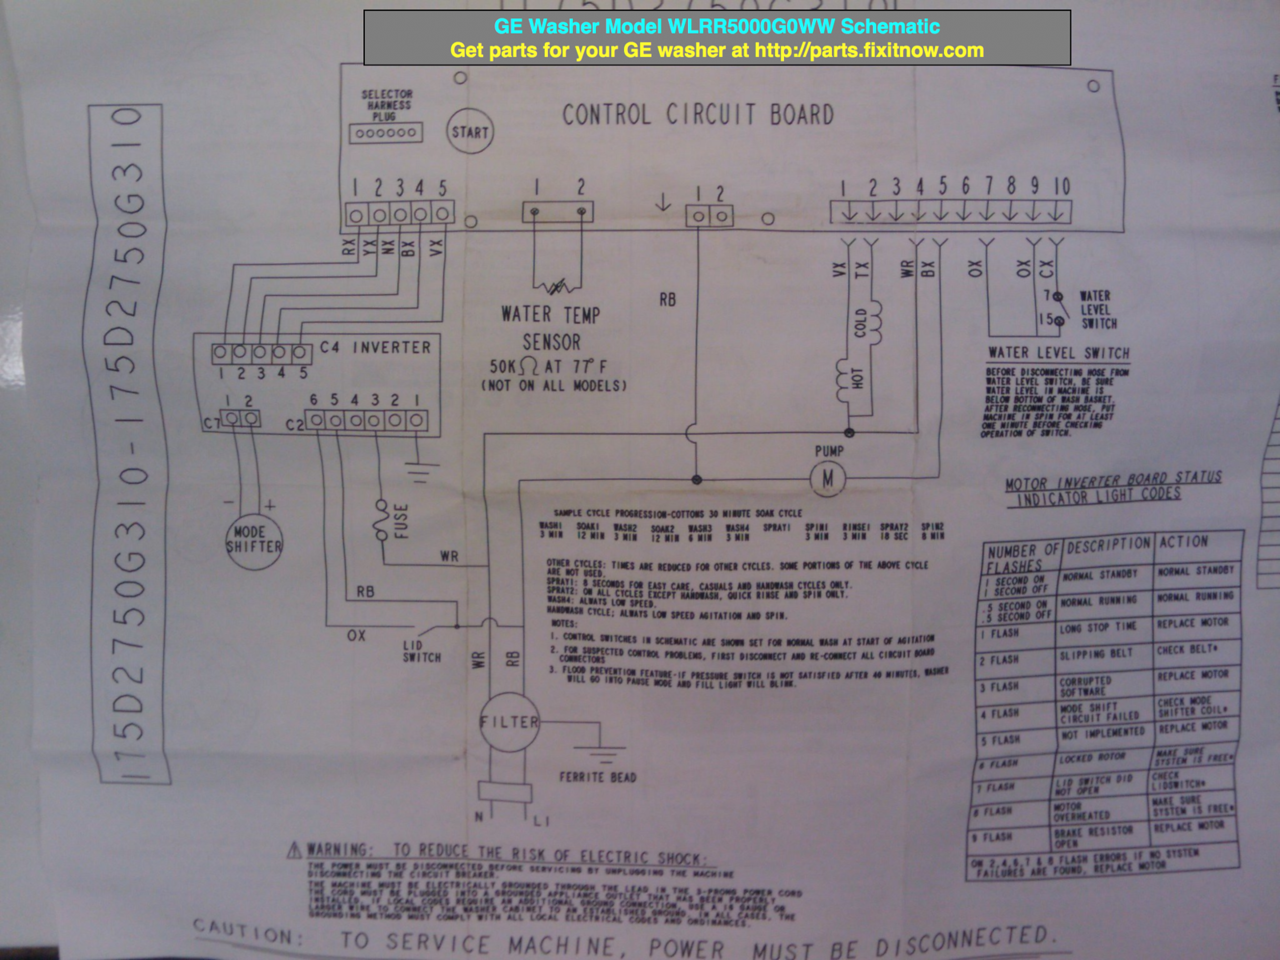 Wiring Diagrams And Schematics Appliantology Whirlpool Washing Ge Washer Model Wlrr5000g0ww Schematic